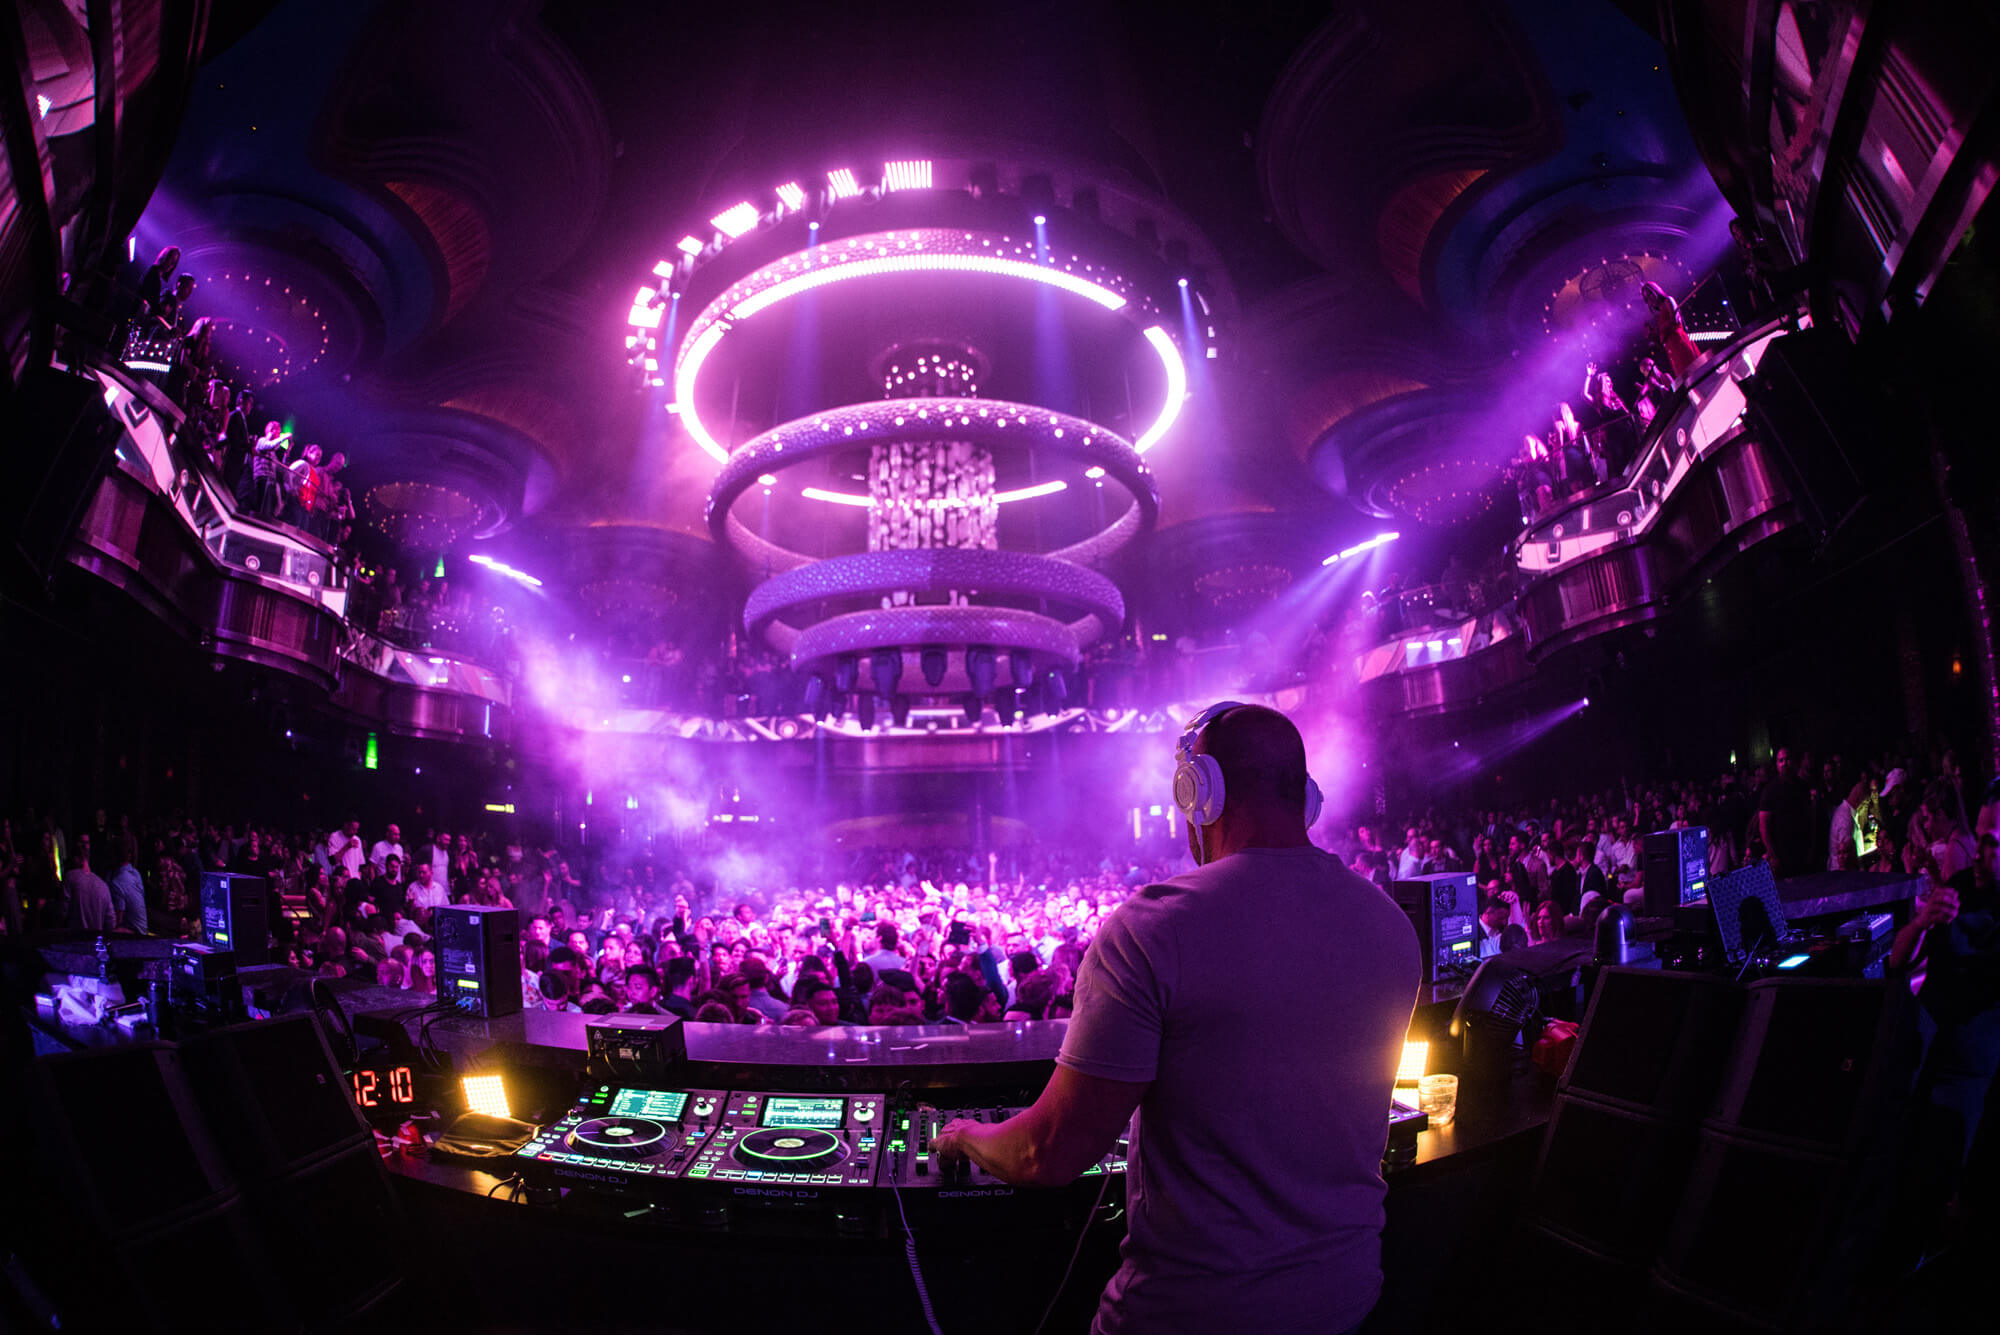 Tiësto takes the turntables at OMNIA Nightclub.